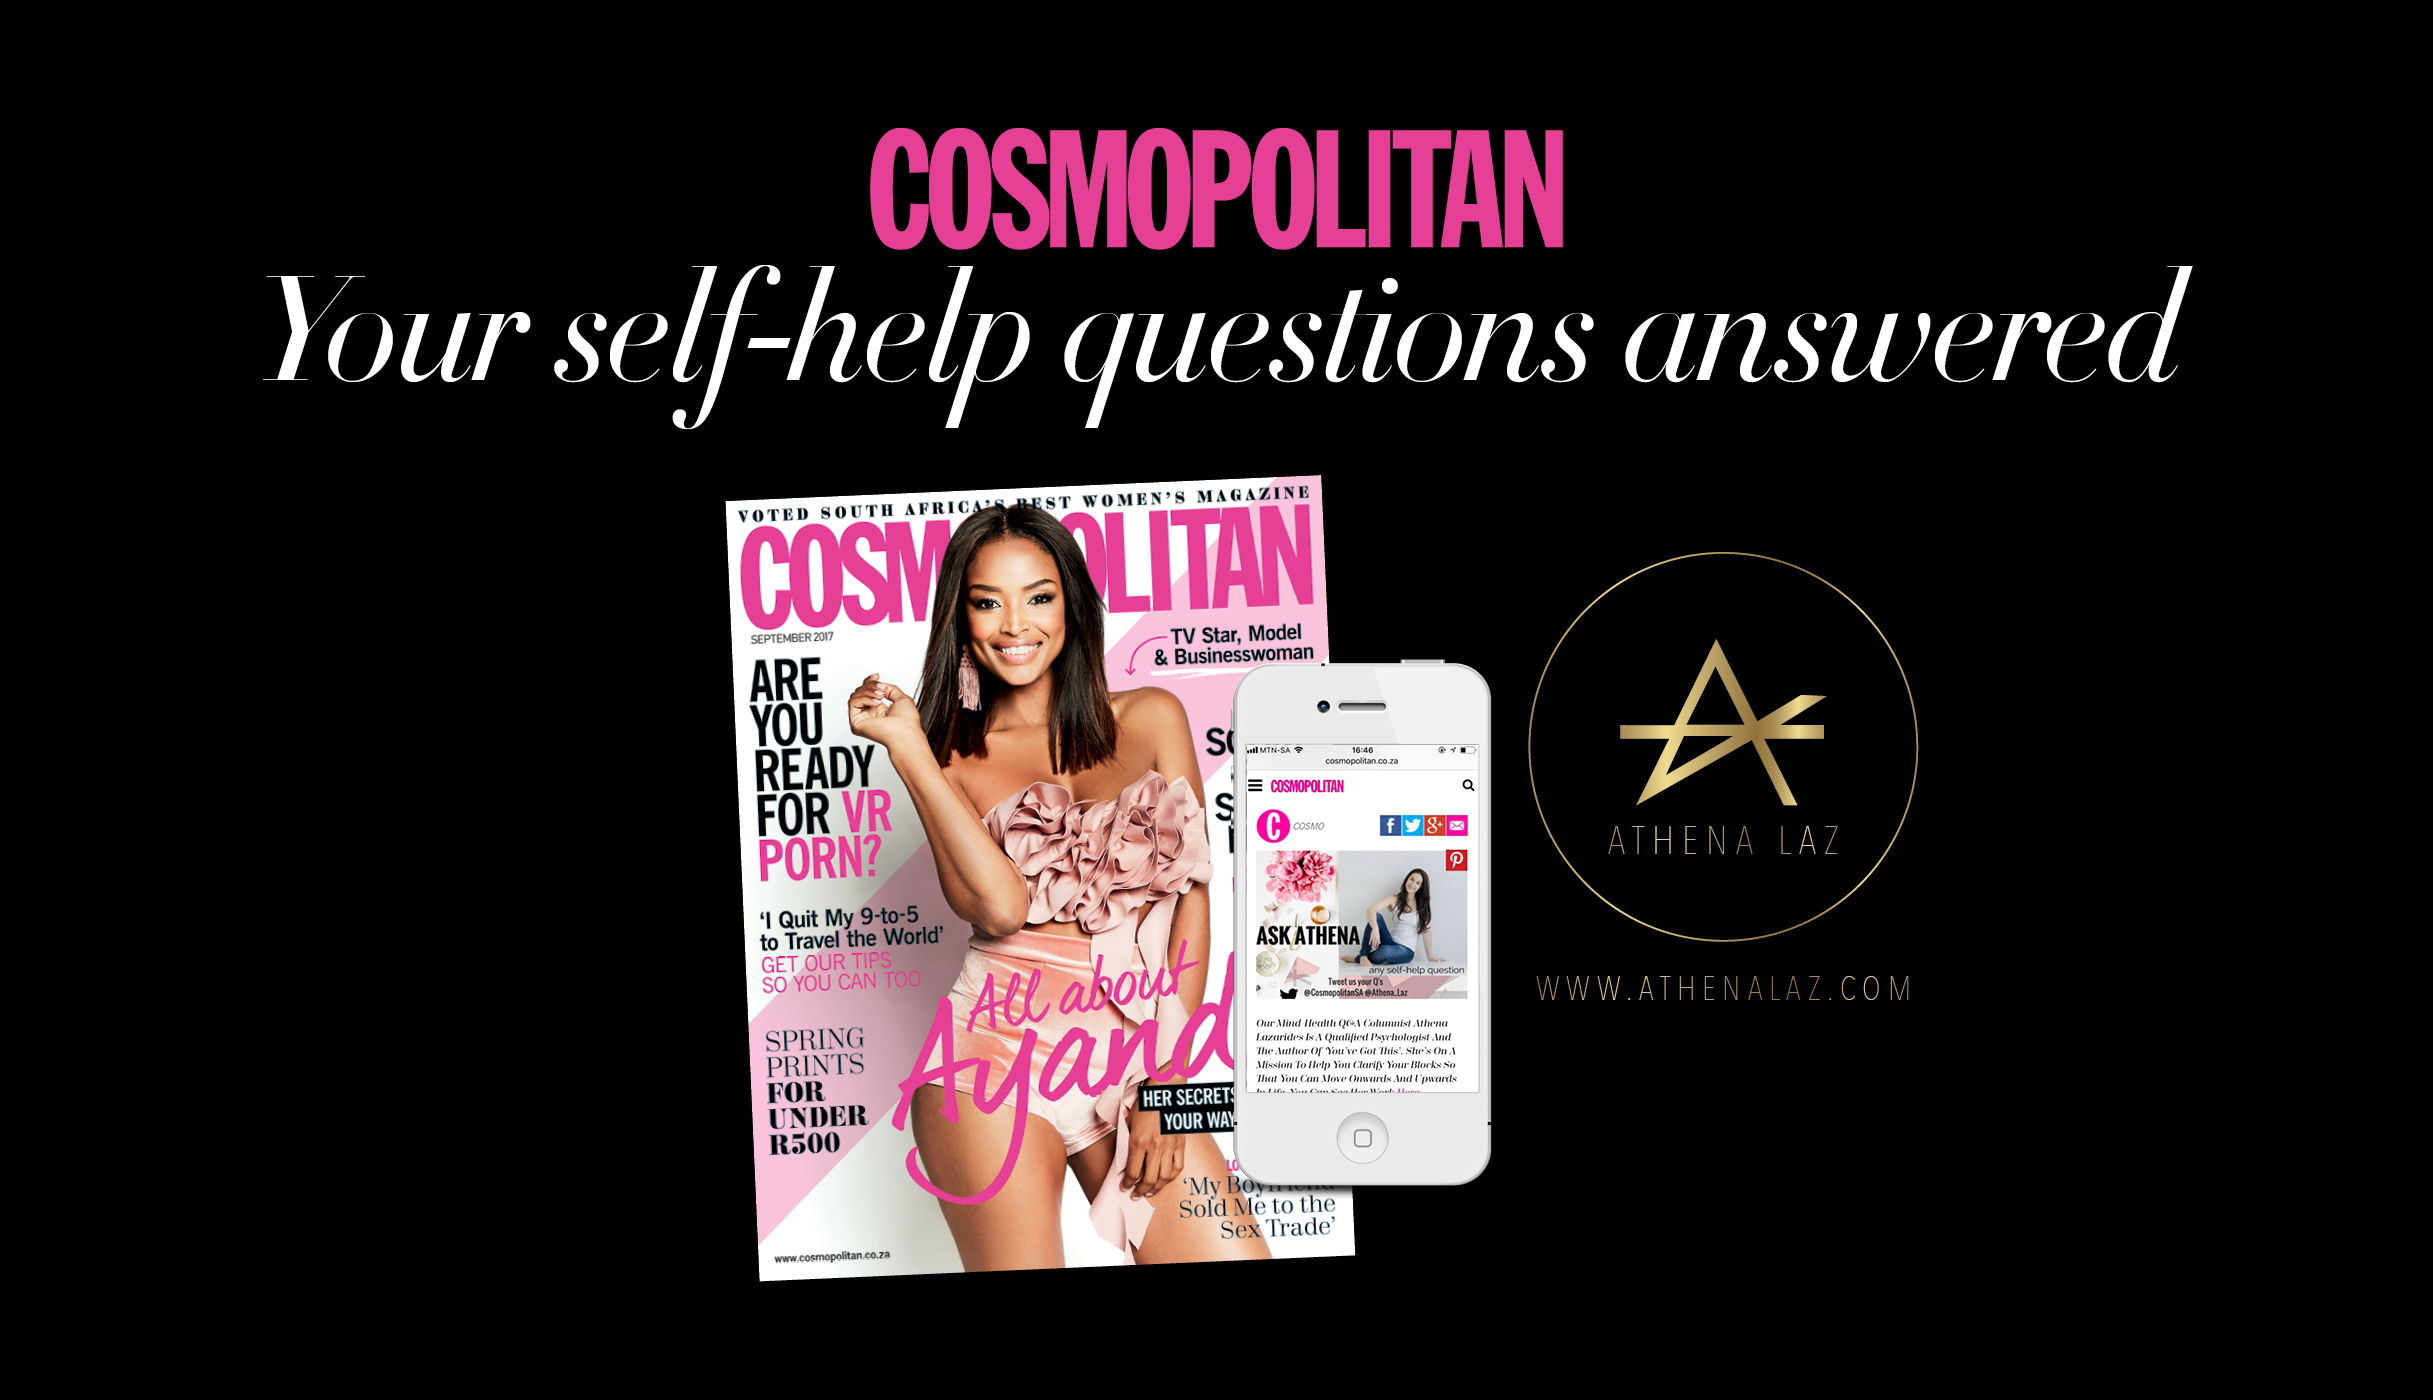 Athena Laz is a self-help and wellness expert for Cosmopolitan Magazine